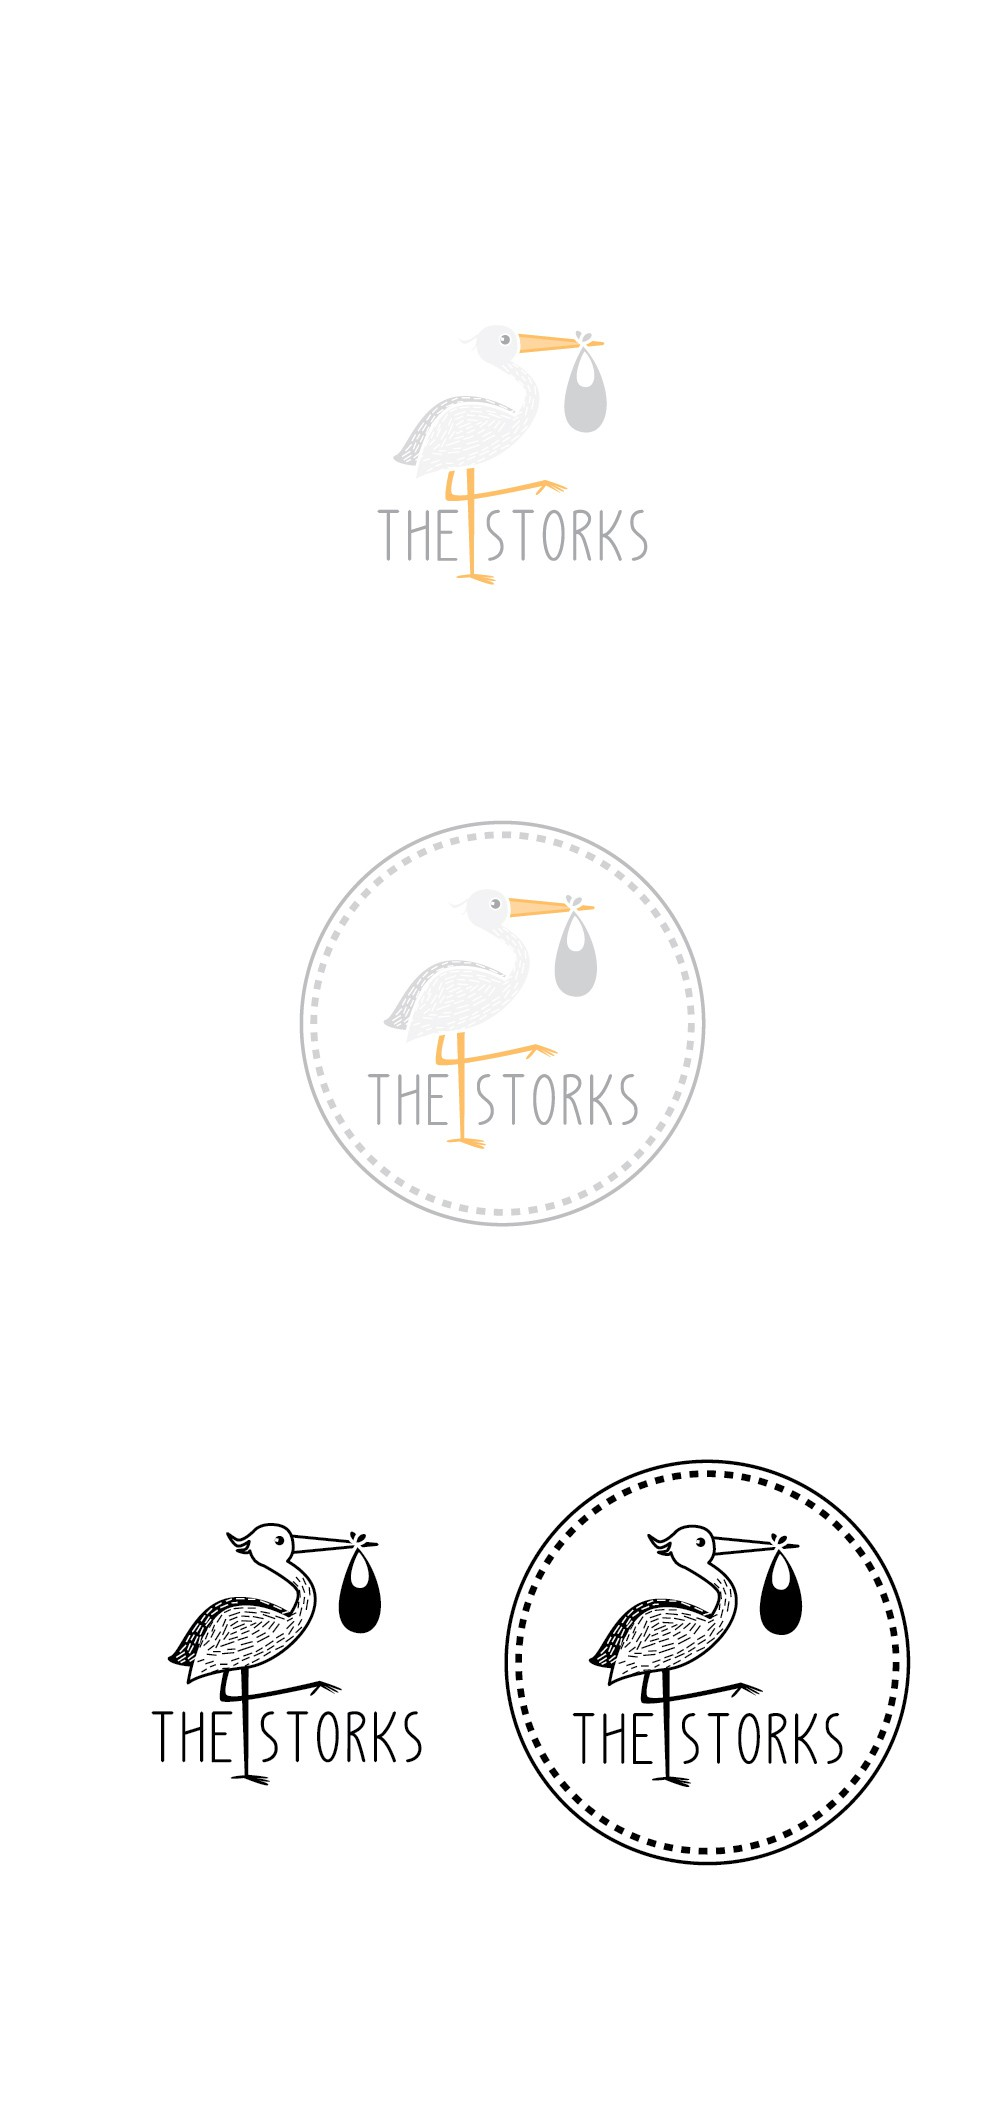 Create a modern, playful logo for baby brand The Storks